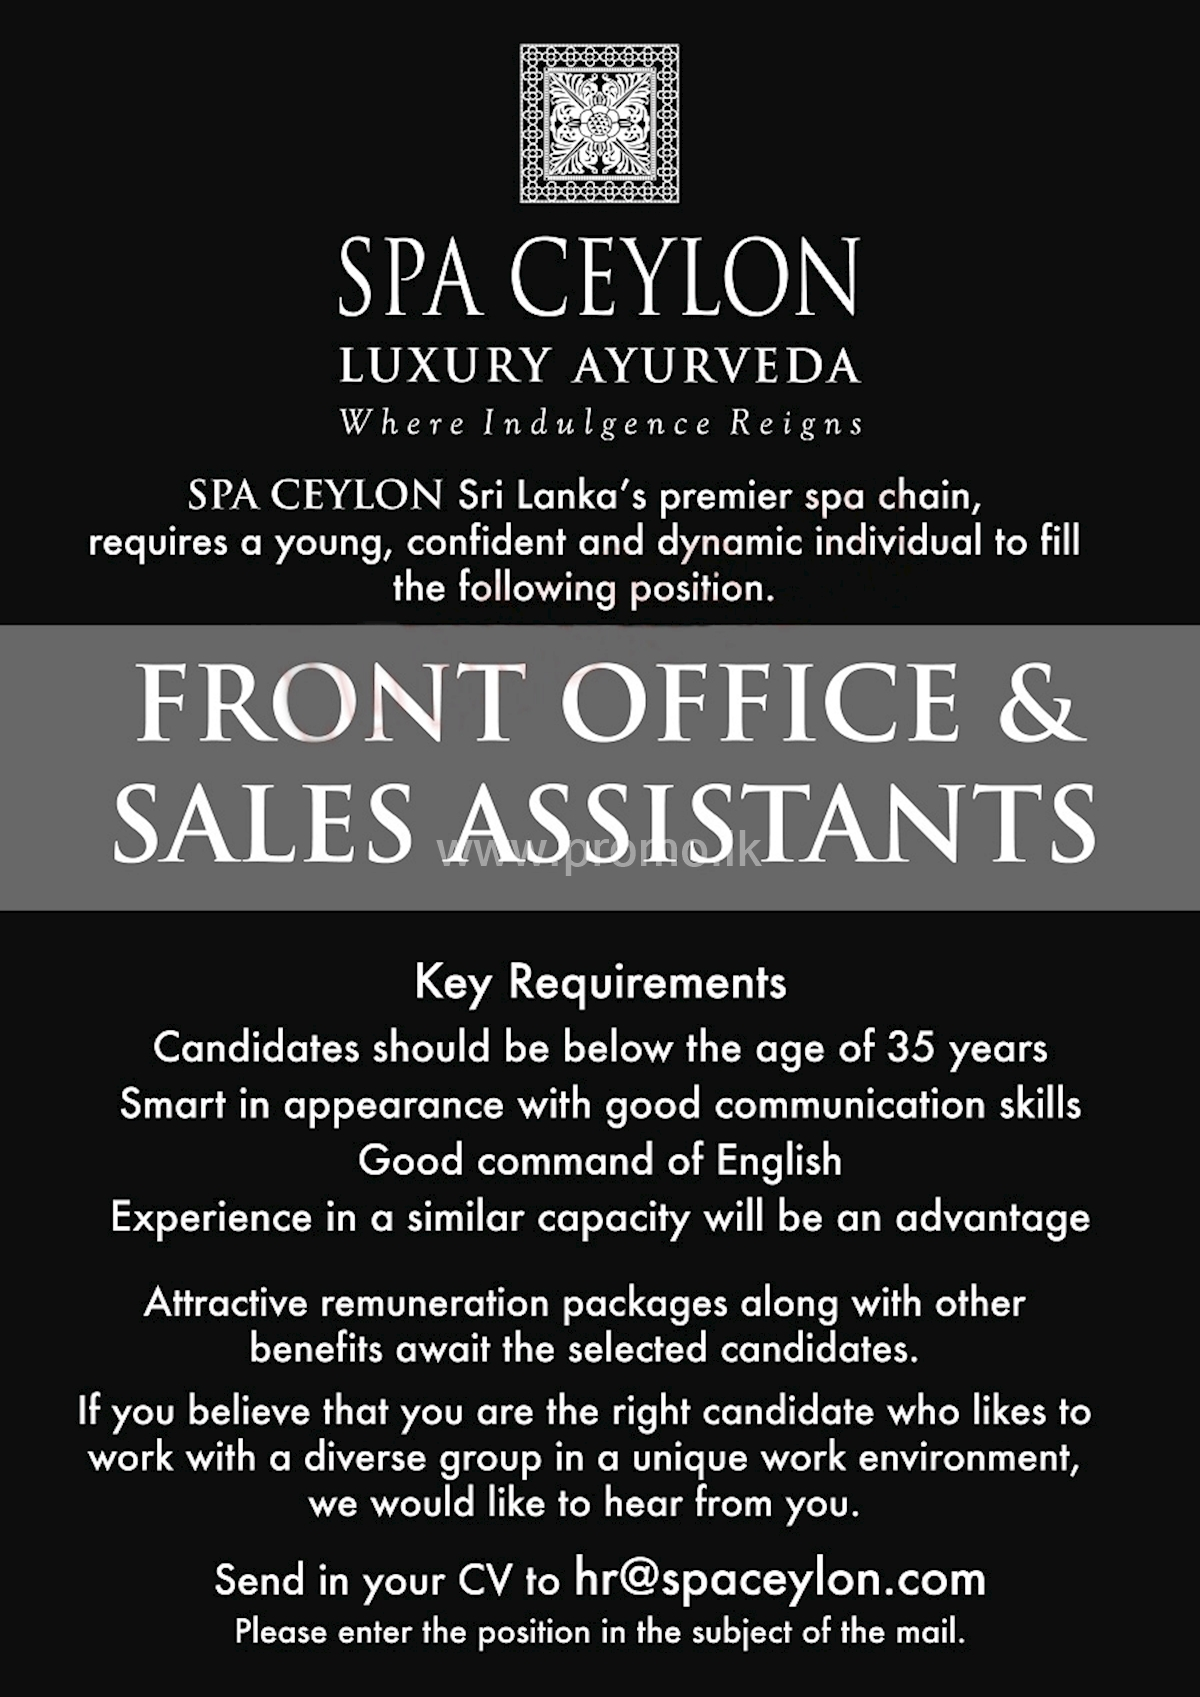 Front Office and Sales Assistants at Spa Ceylon Luxury Ayurveda